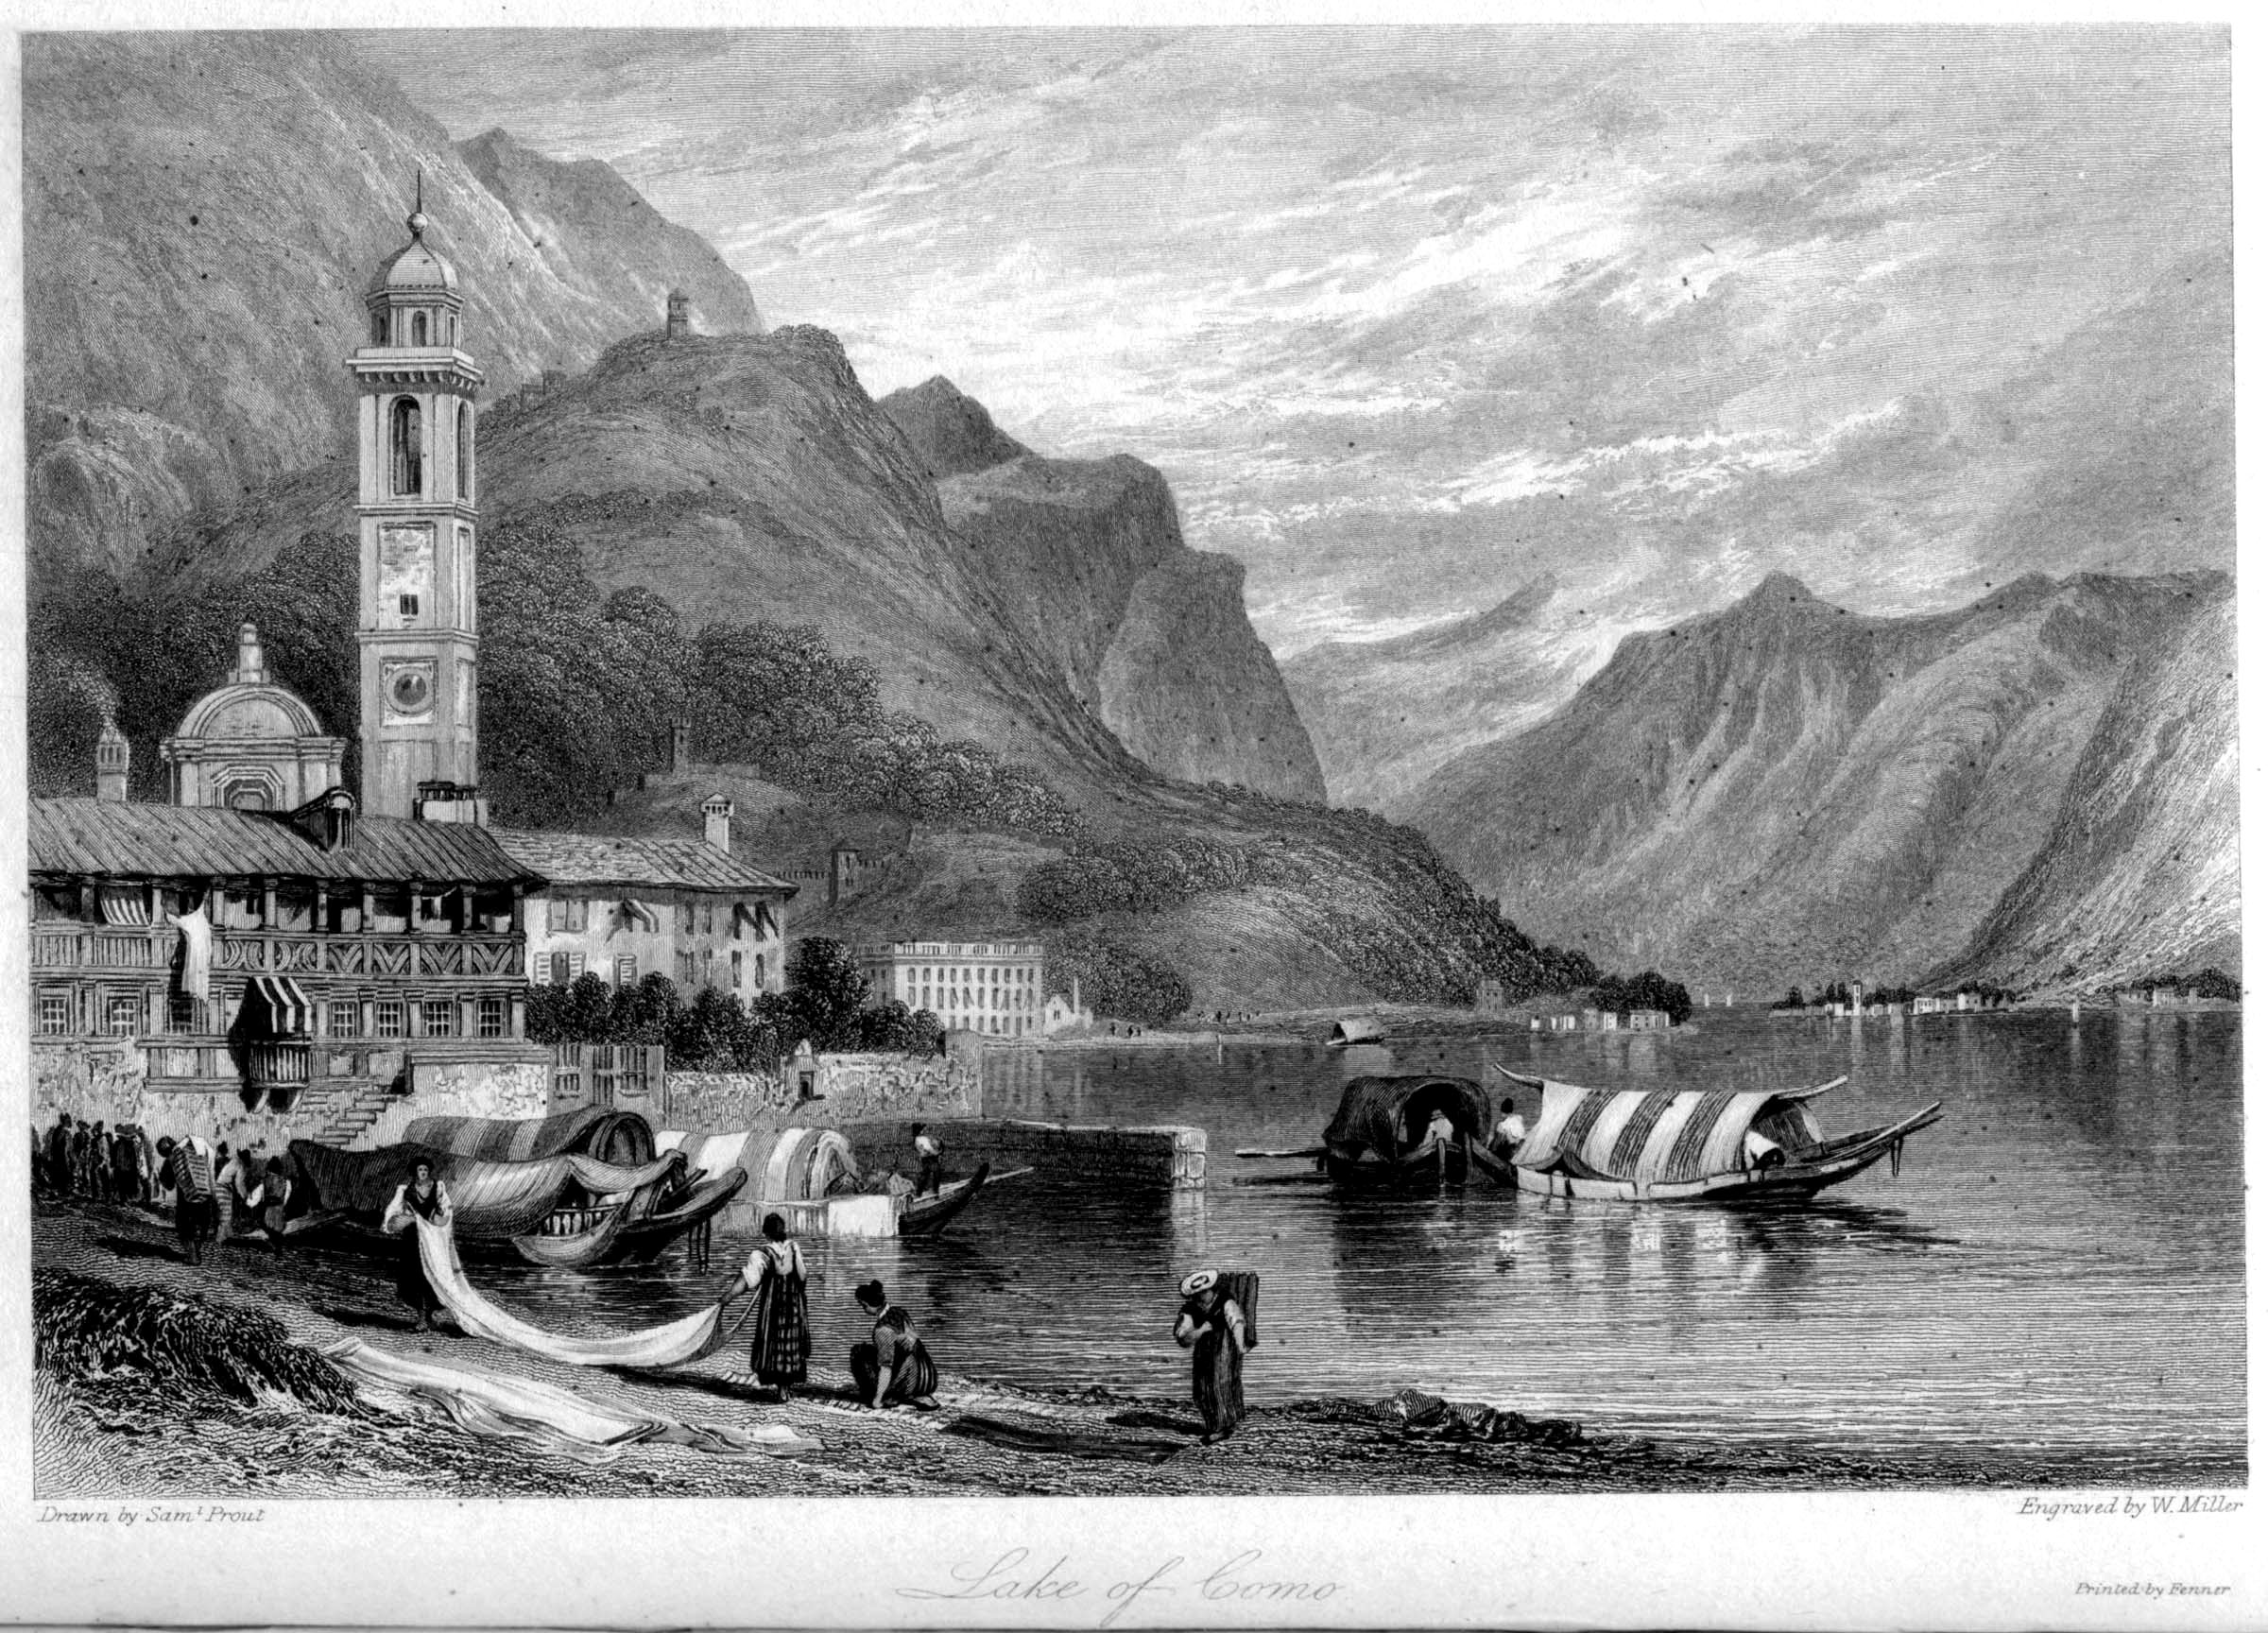 Lake_of_Como_engraving_by_William_Miller_after_S_Prout.jpg